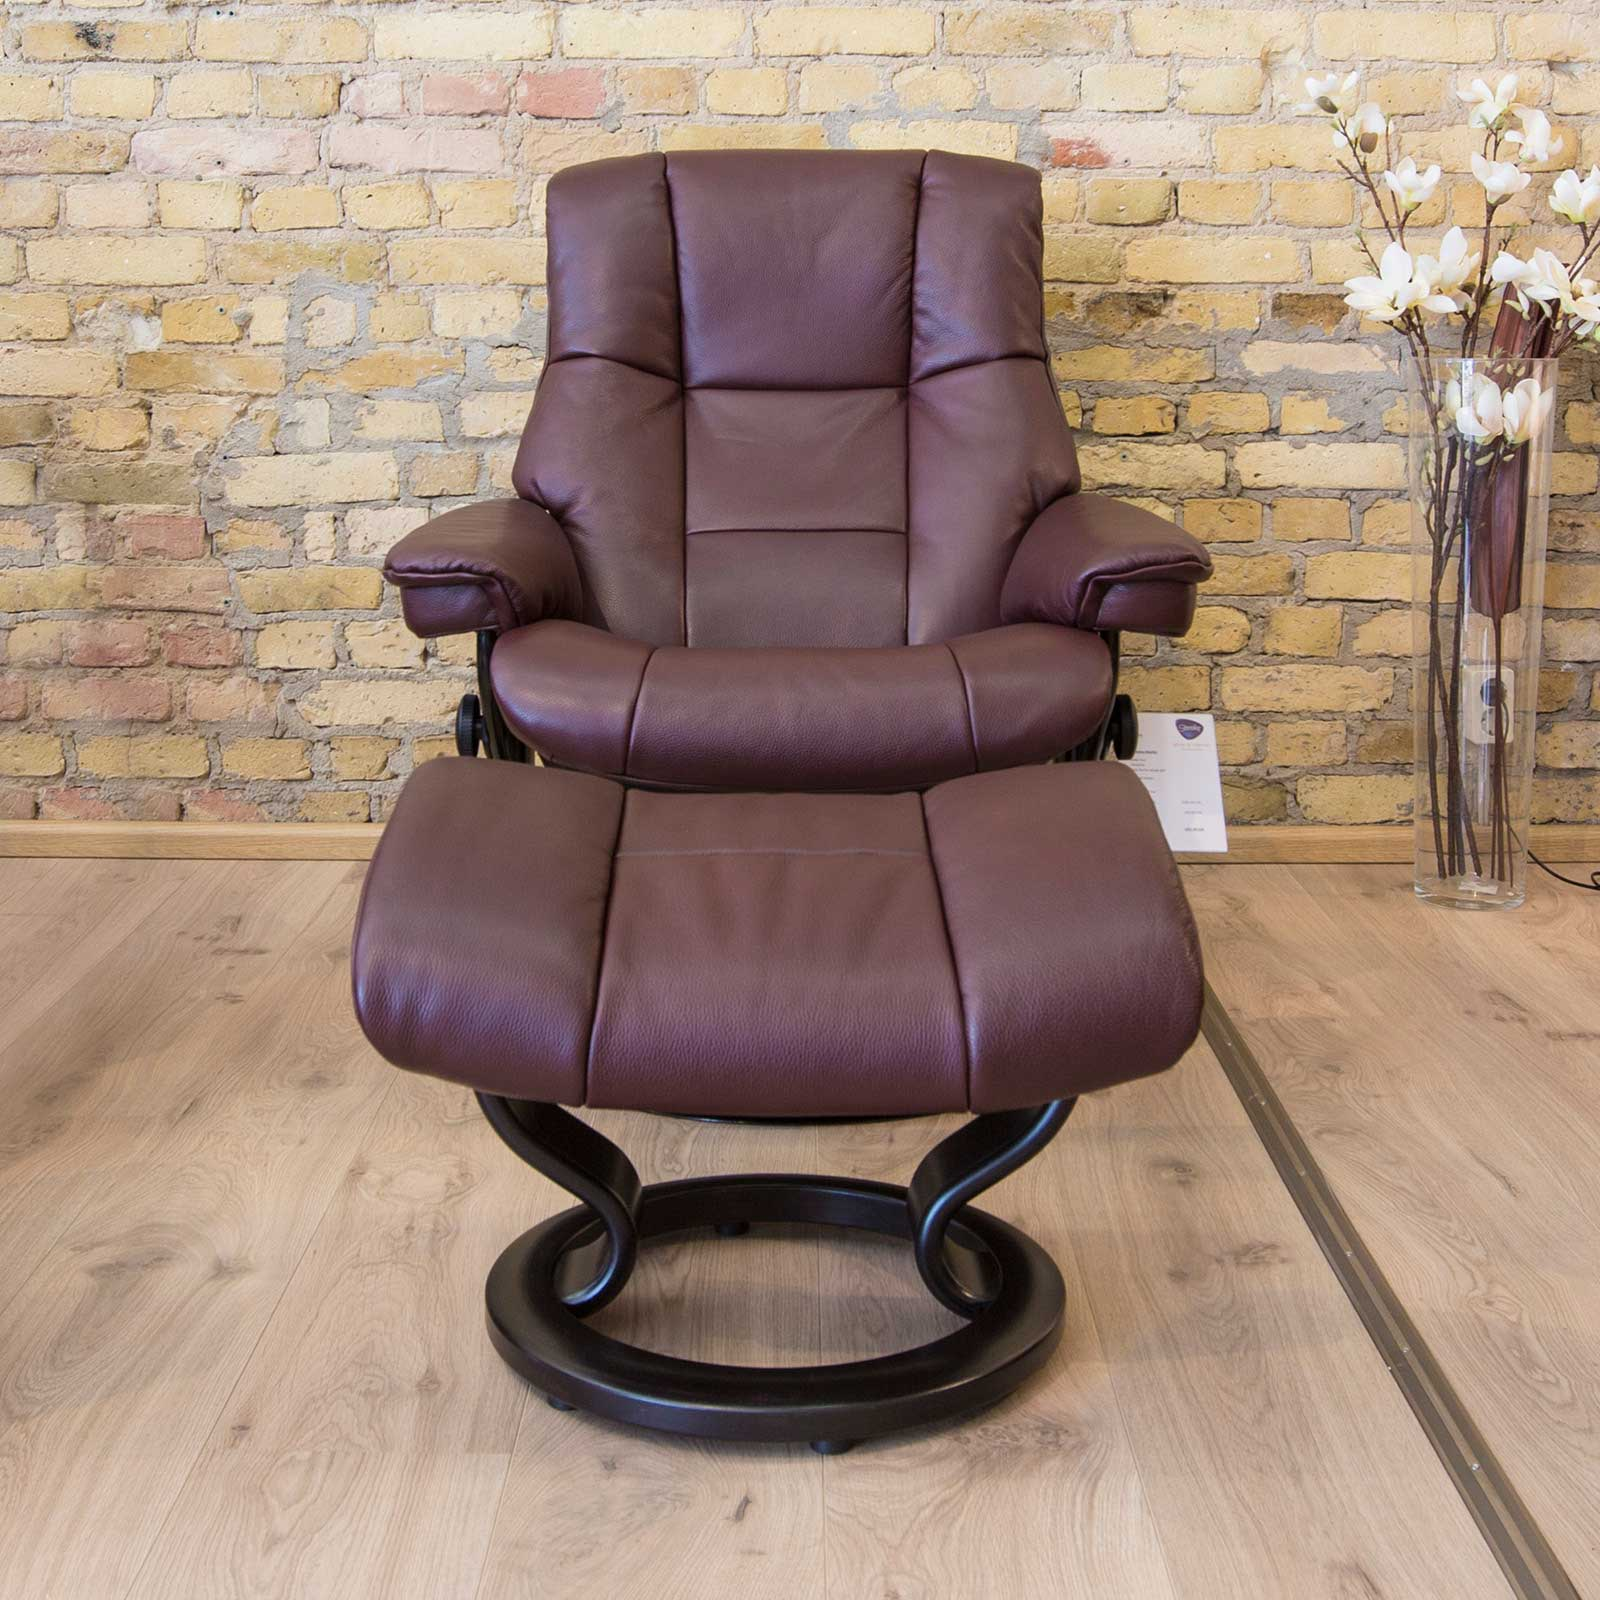 relaxsessel stressless reno cori amarone untergestell wenge mit hocker house of comfort. Black Bedroom Furniture Sets. Home Design Ideas